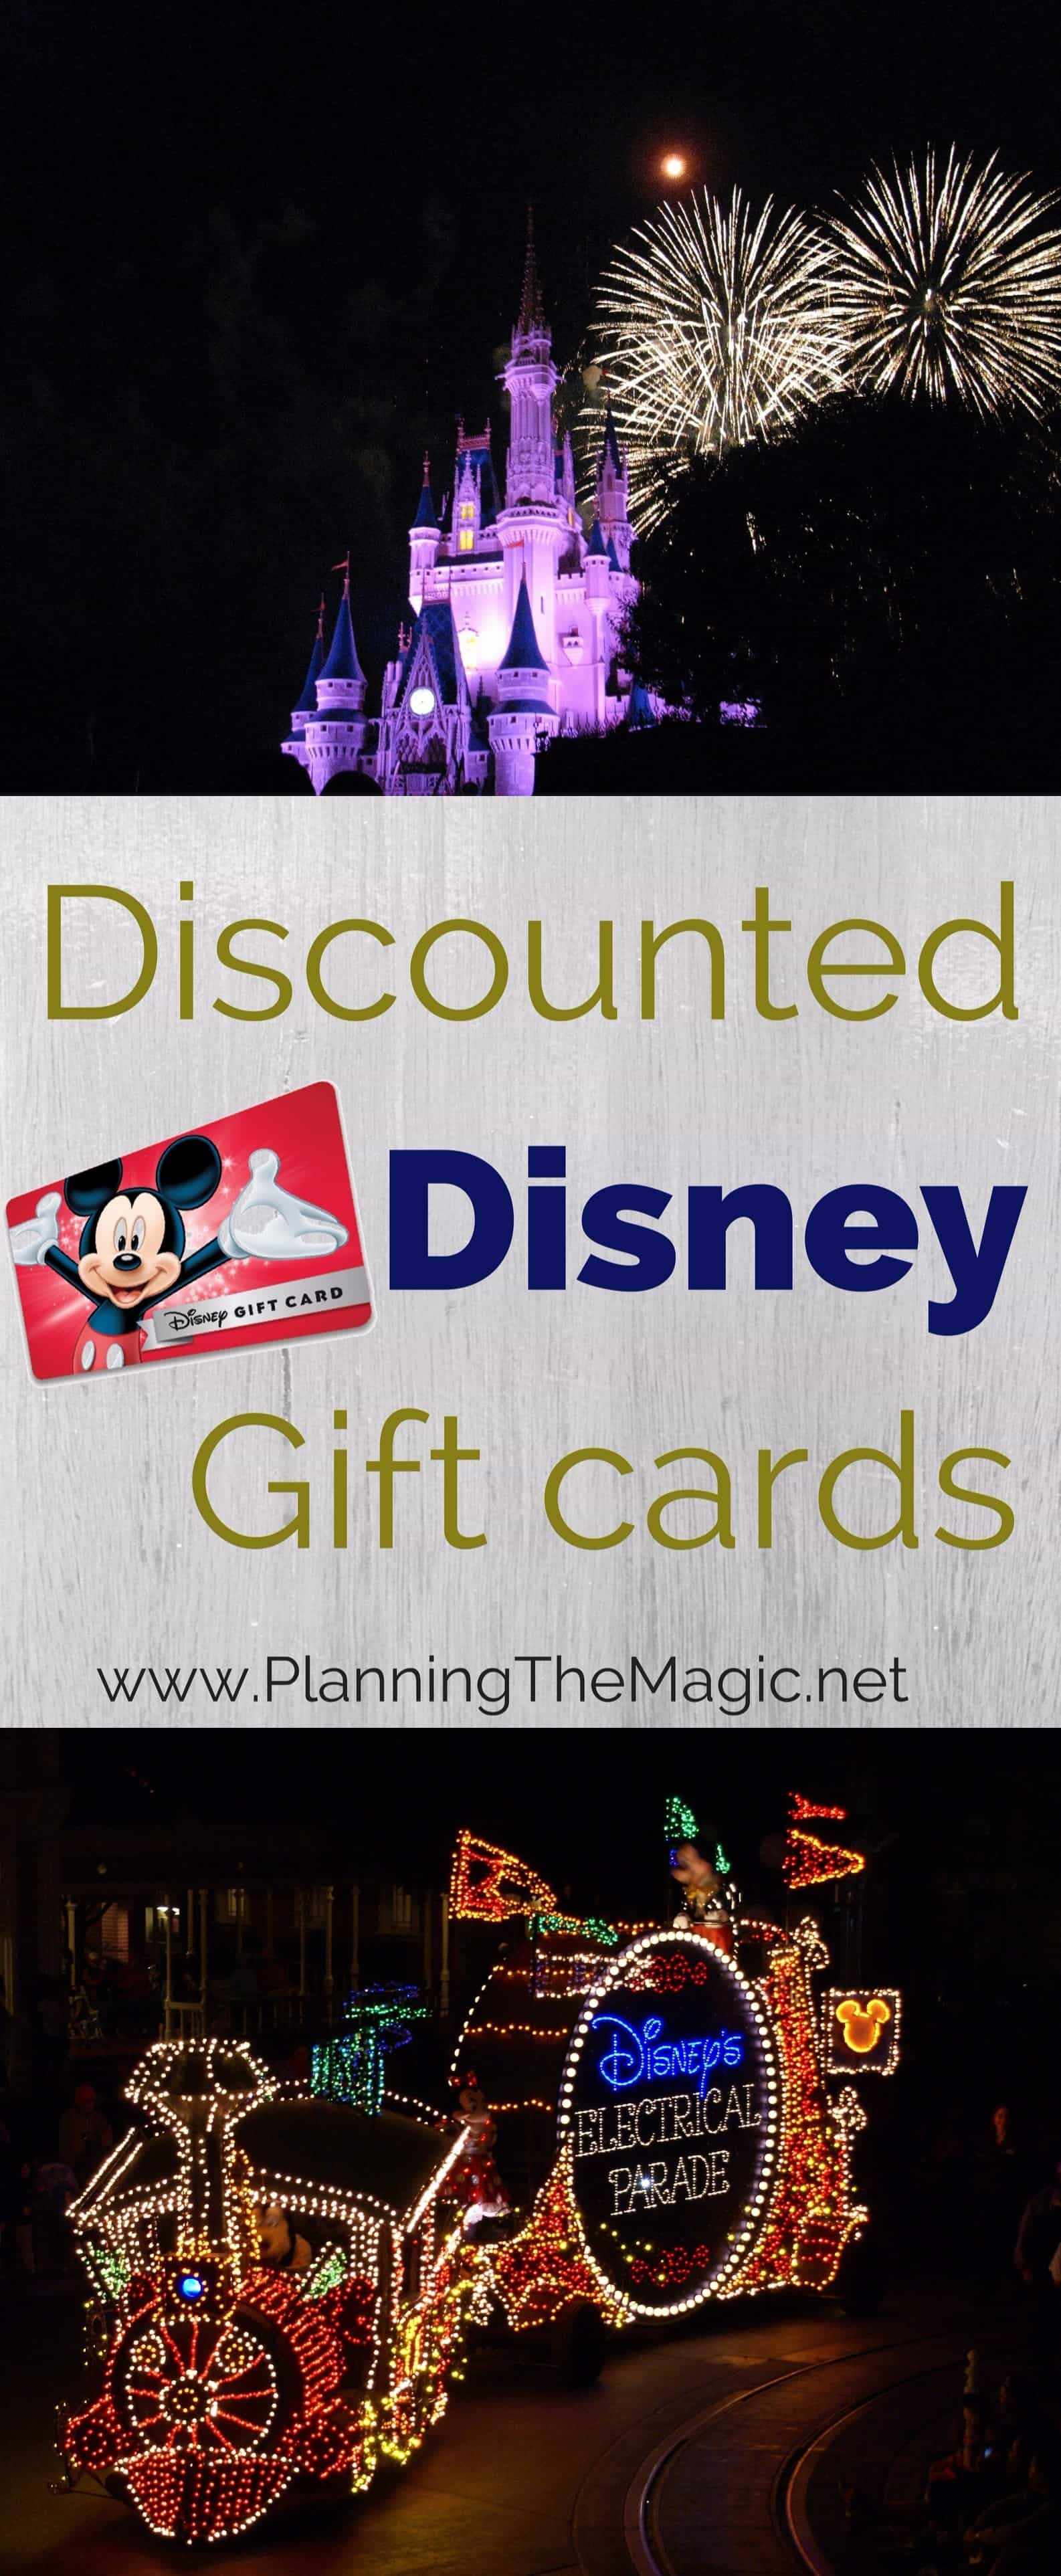 Discounted Disney Gift Cards 2020 Tips You Need To Know Planning The Magic